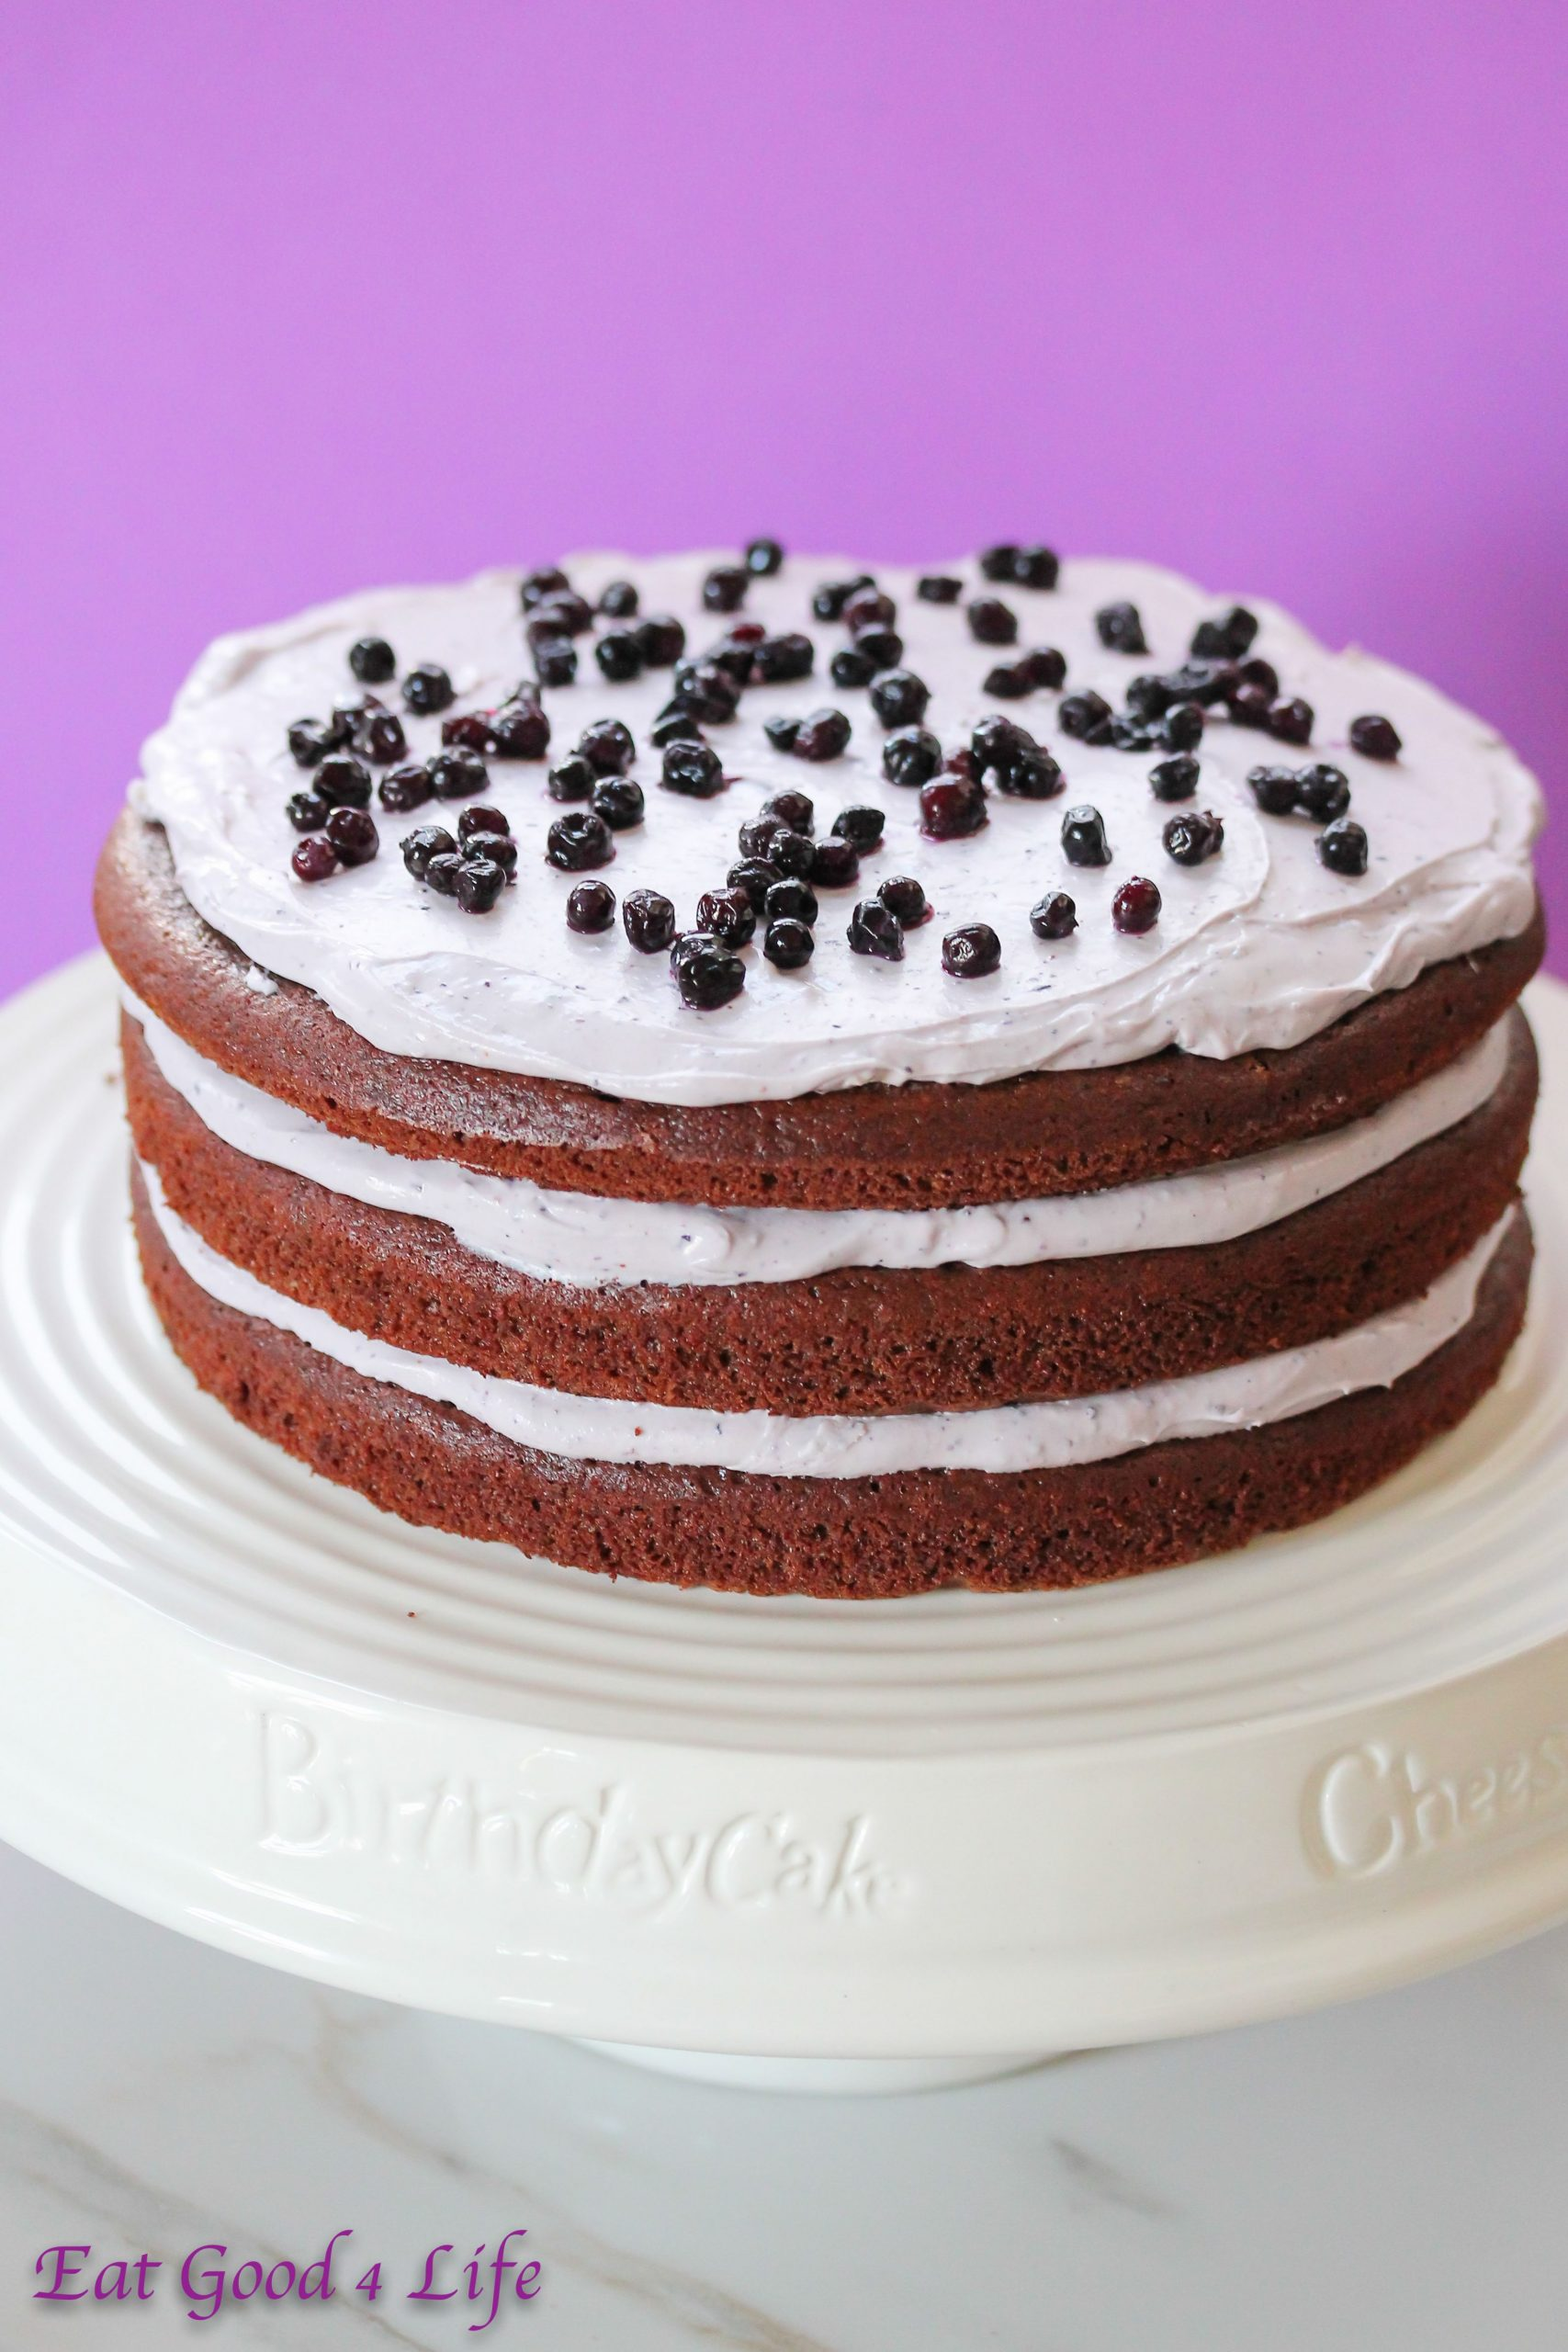 Chocolate quinoa cake-gluten free - Recipe Chocolate Quinoa Cake